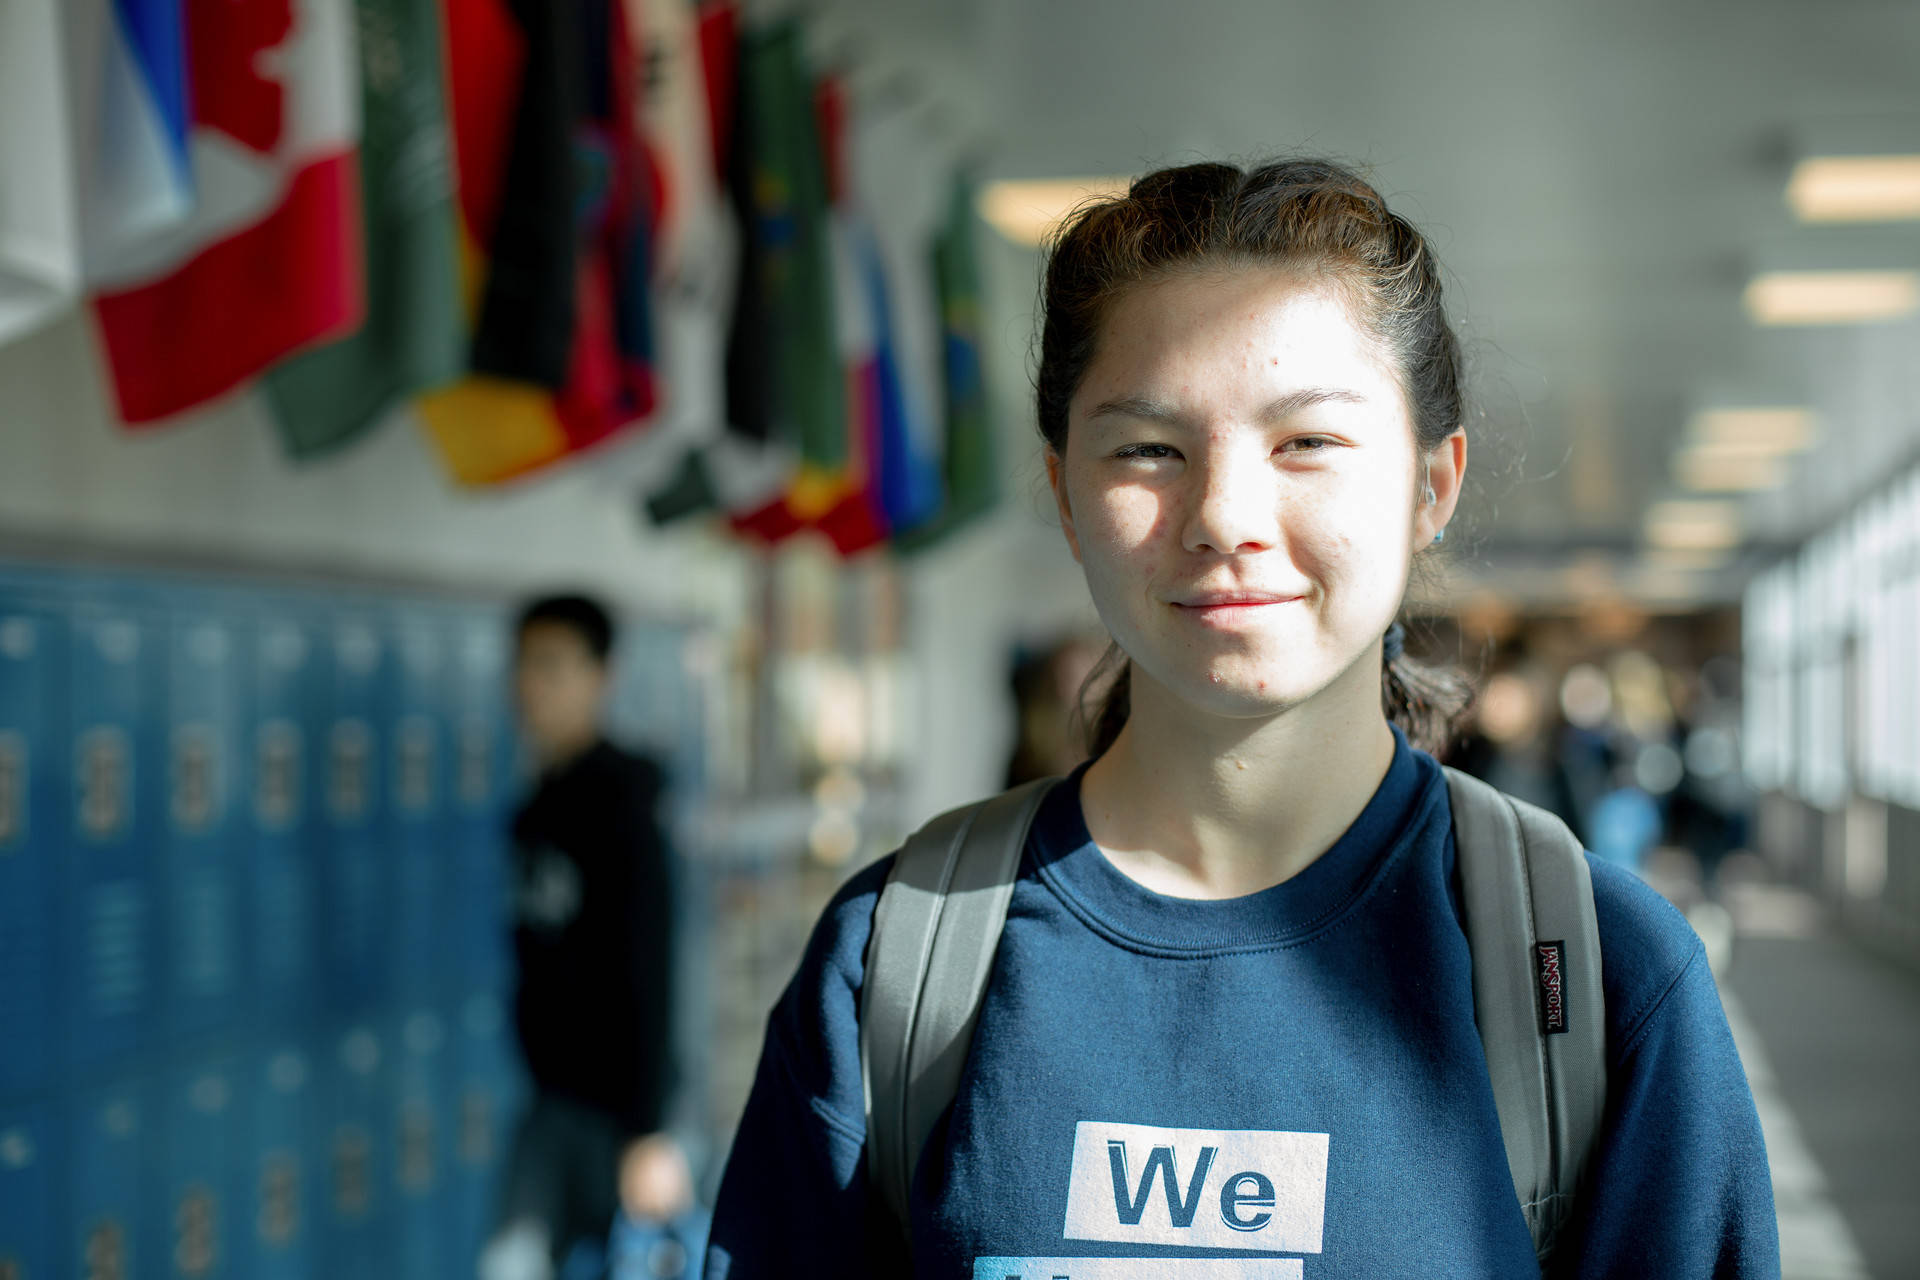 Olive Howden, 16, is the only deaf student at her high school. Howden wears bilateral cochlear implants to help her hear. Sruti Mamidanna/KQED